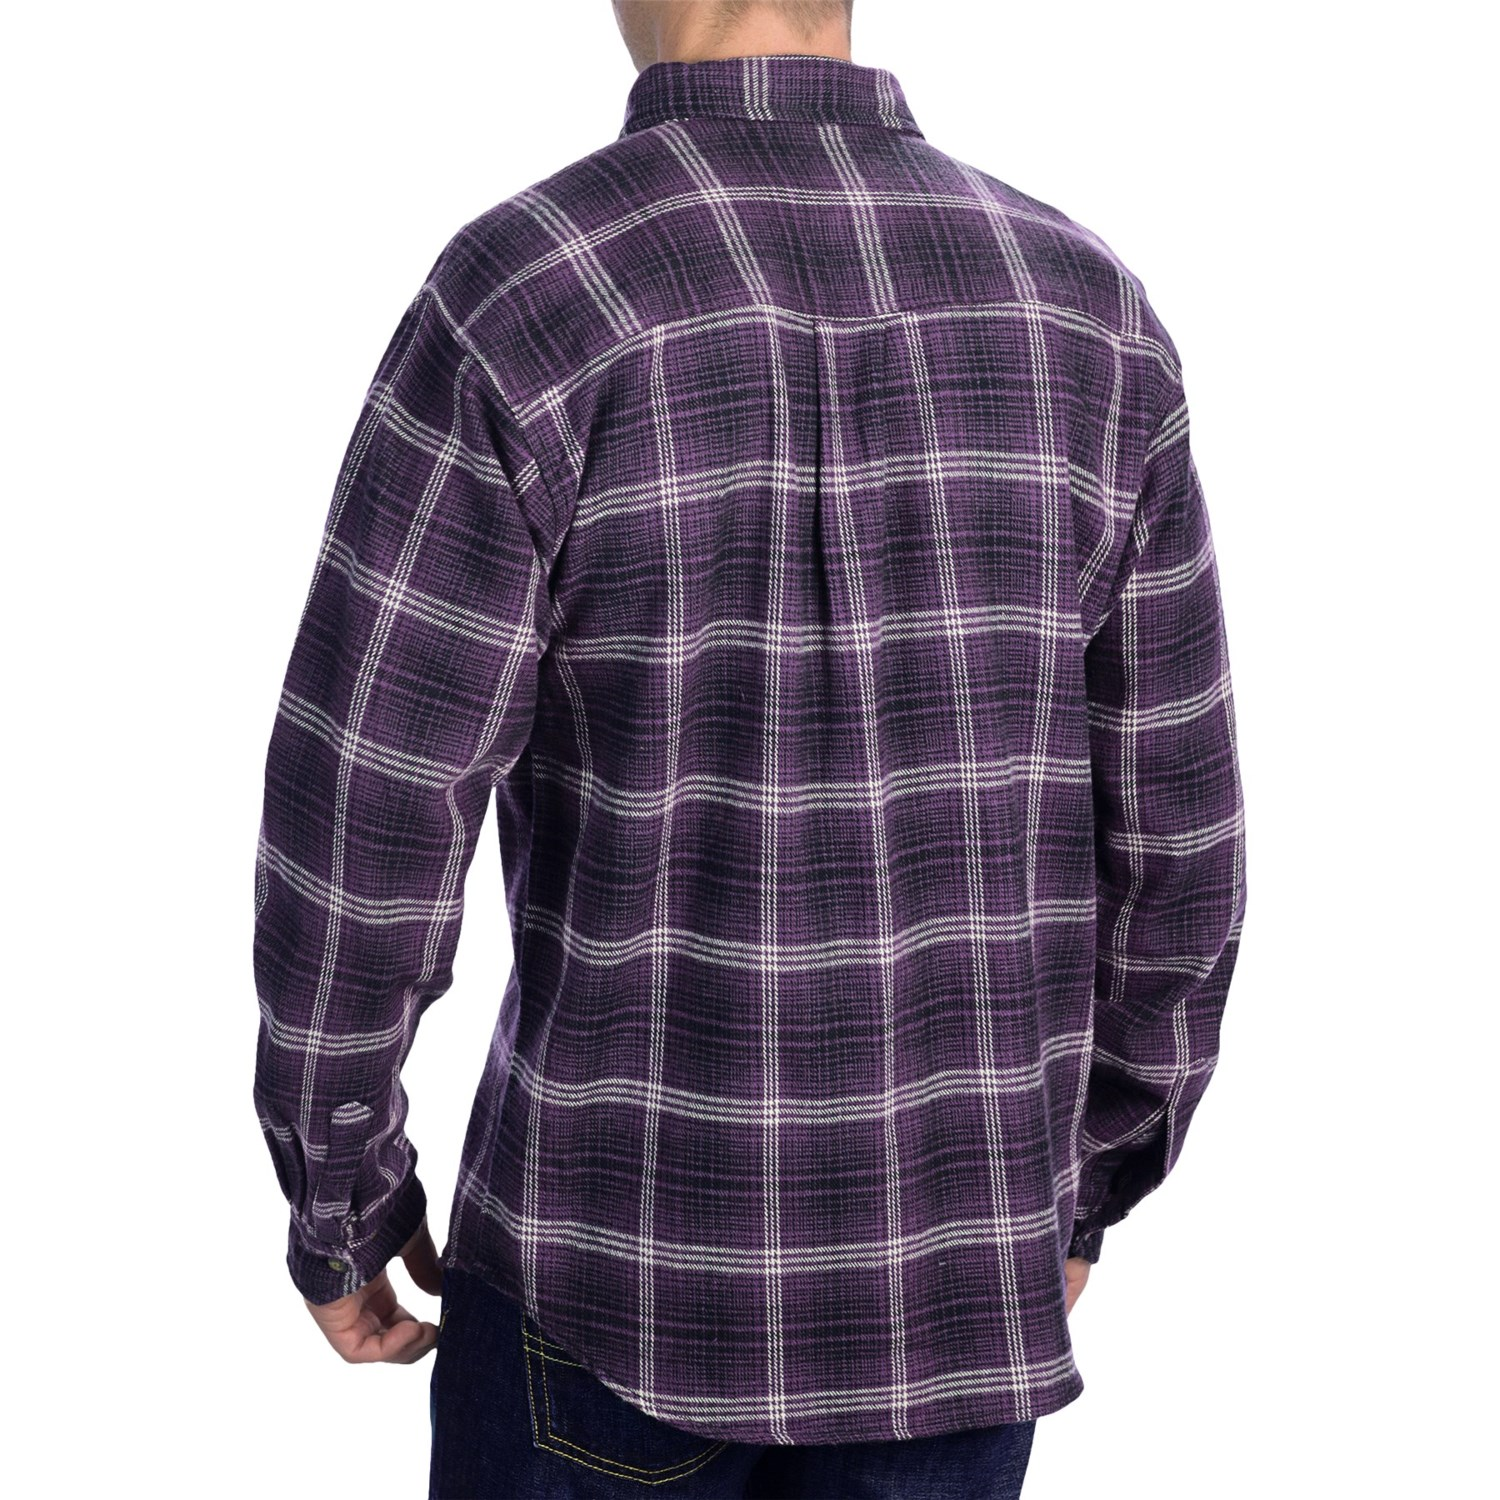 Shop for women s plaid shirt at rabbetedh.ga Free Shipping. Free Returns. All the time.